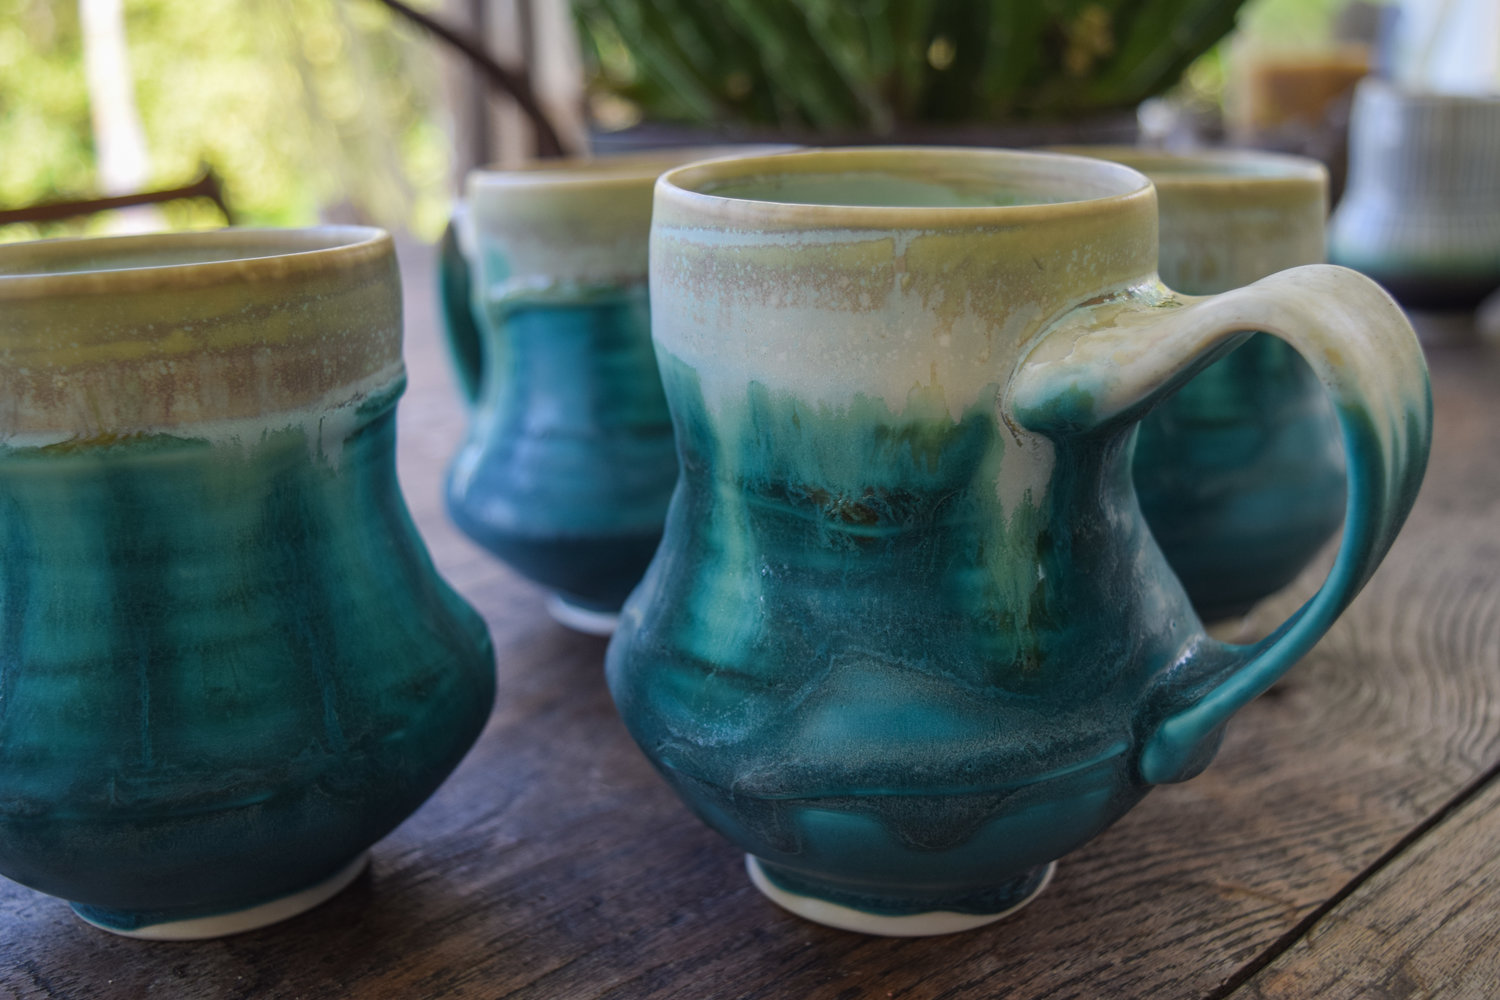 POTTERY - BRING SOME HOME OR MAKE YOUR OWN